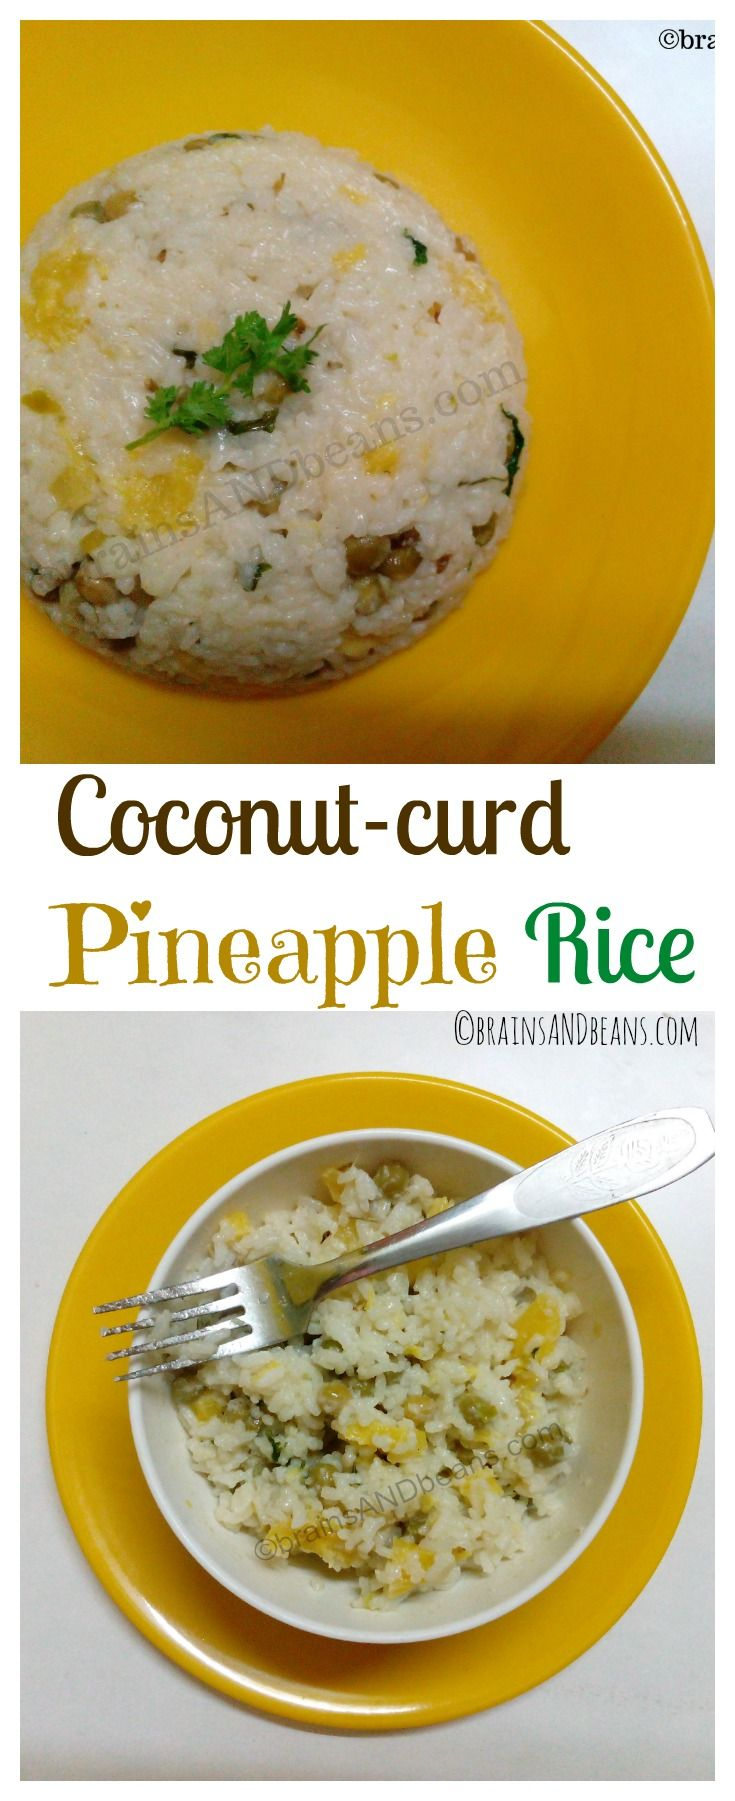 It's a curd rice but not the curd you think. Creamy and lusty rice made with pineapple, green peas and coriander leaves.